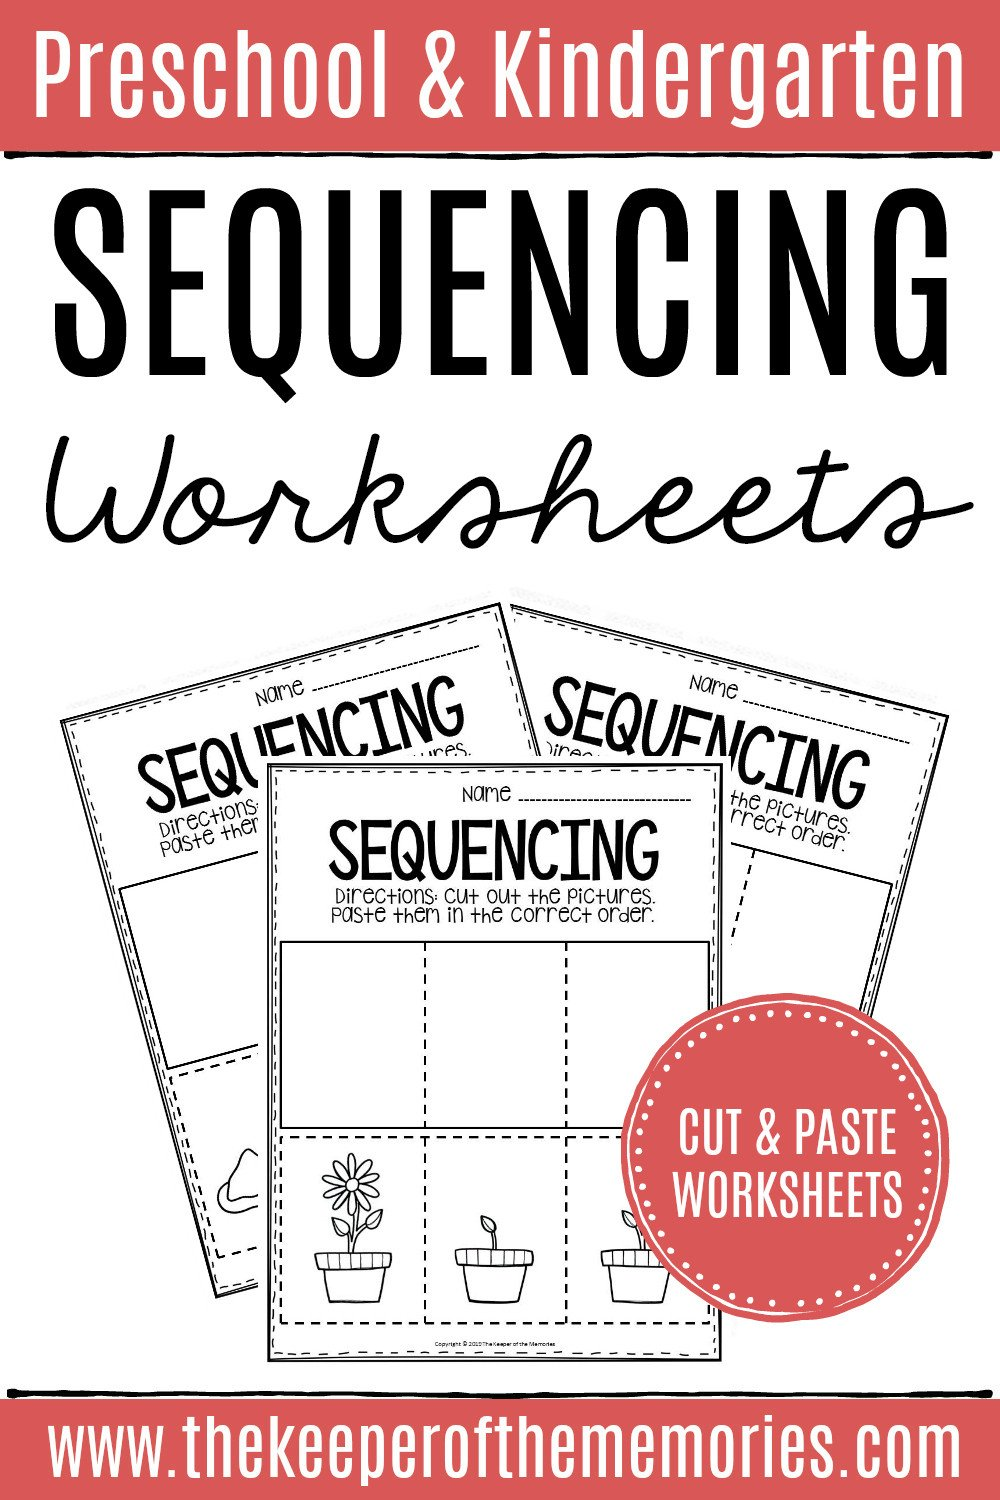 Free Sequencing Worksheets 3 Step Sequencing Worksheets the Keeper Of the Memories